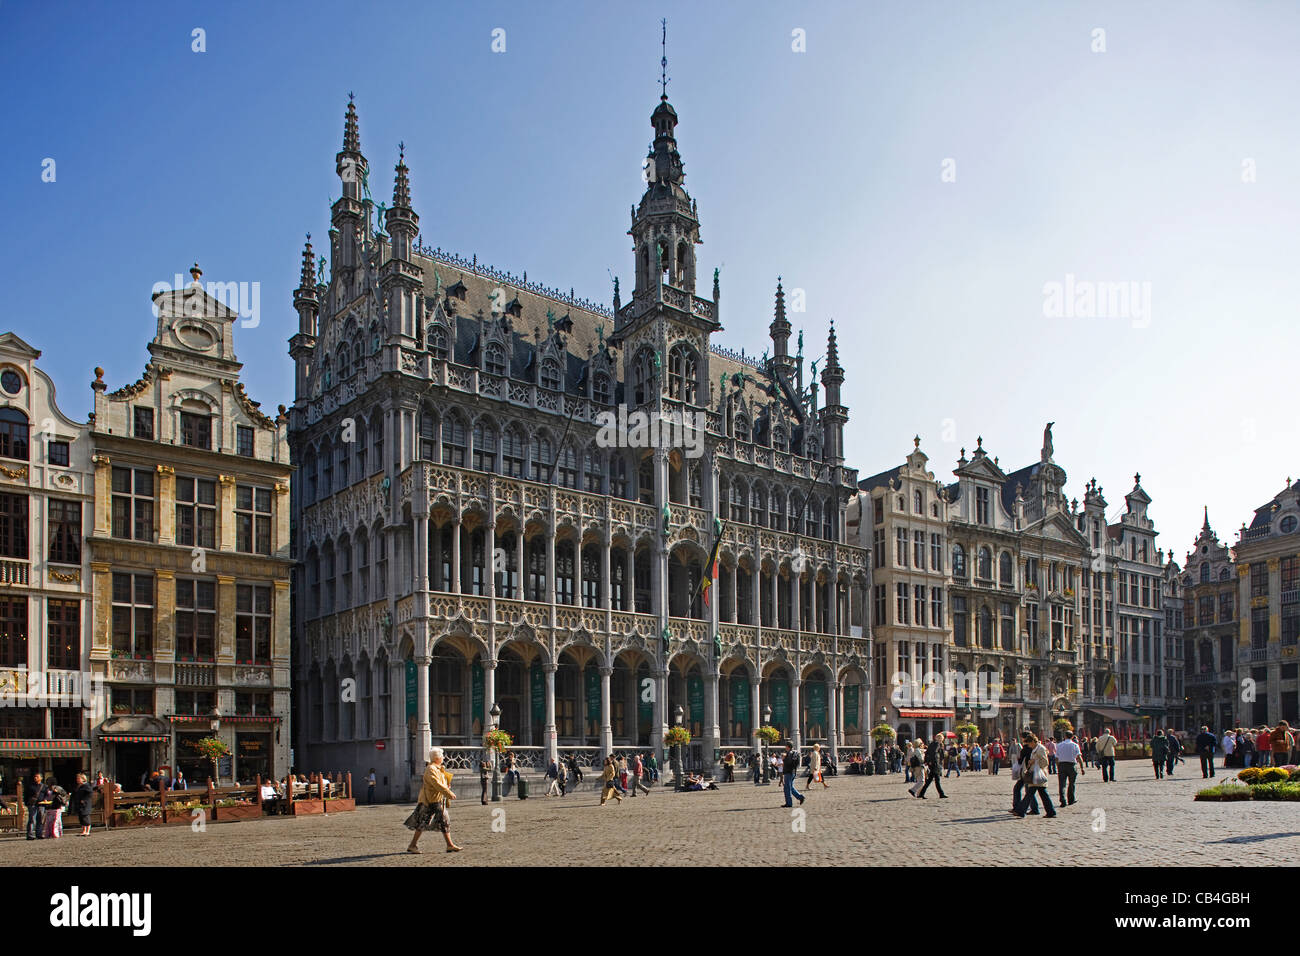 The Maison du Roi / King's House / Broodhuis / Breadhouse at the Grand Place / Grote Markt, Brussels, Belgium - Stock Image